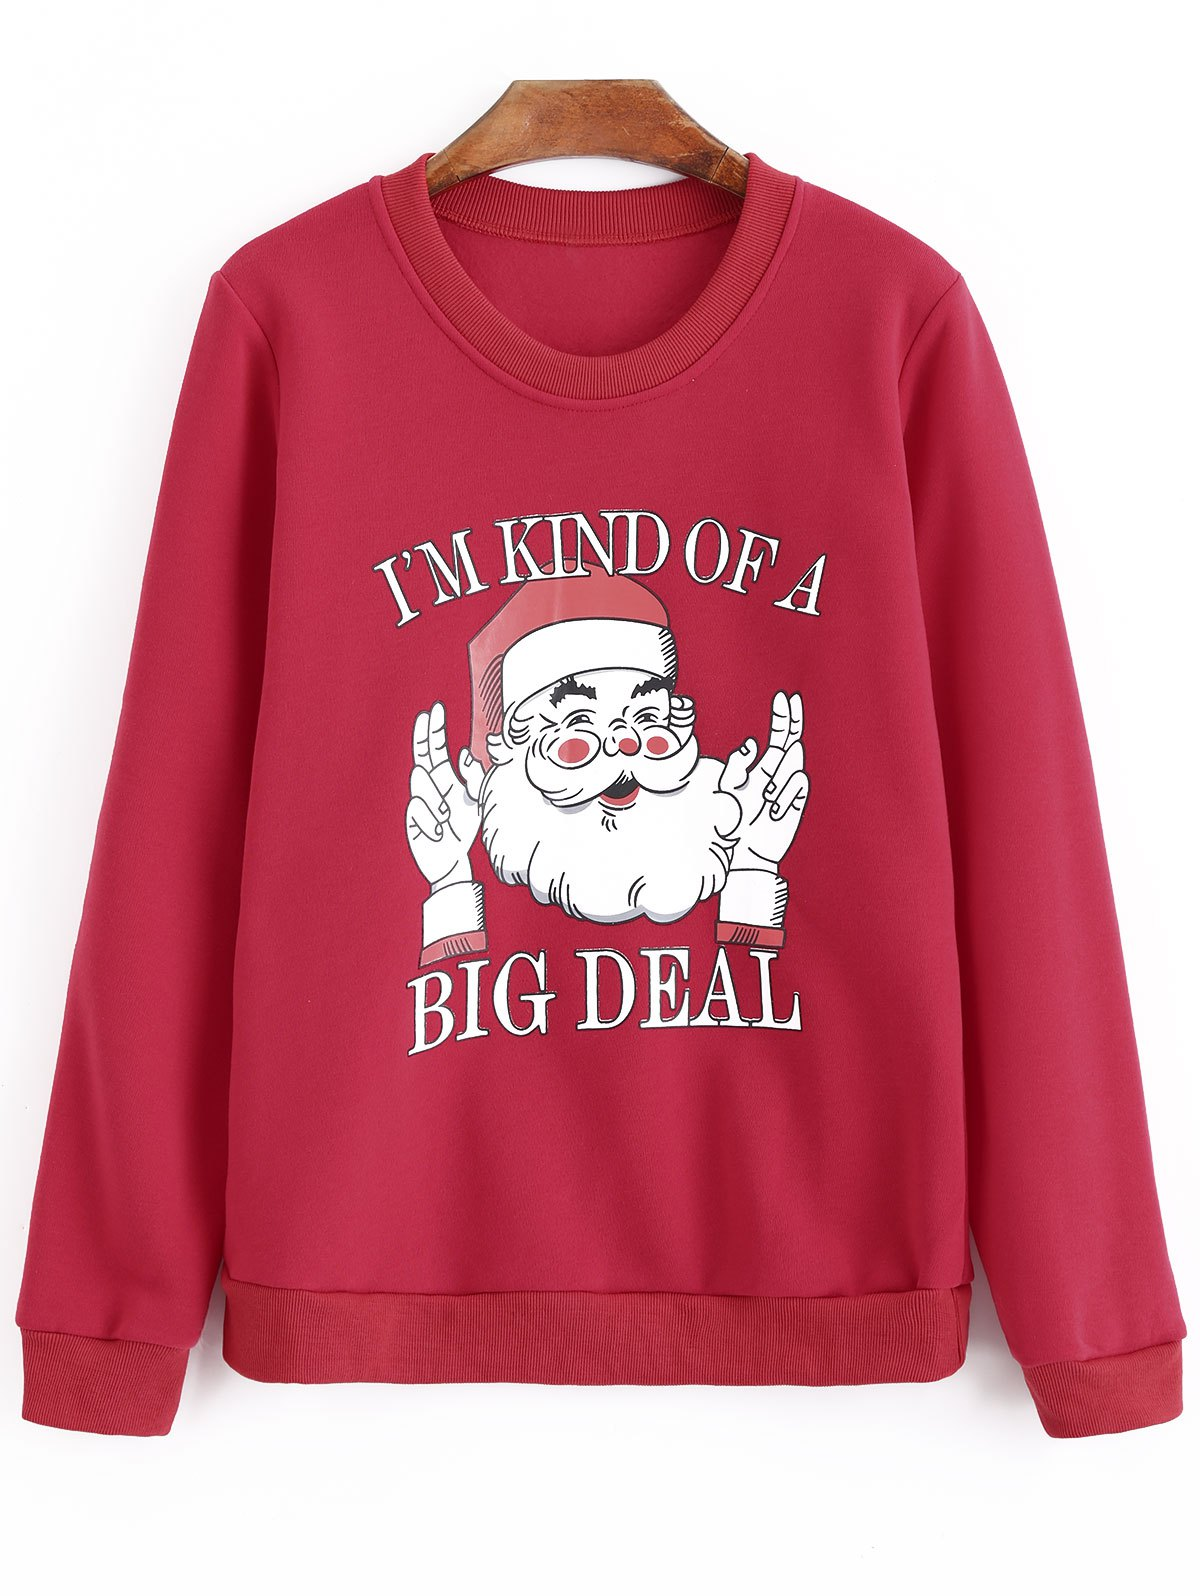 Plus Size Letter Christmas Oversized Sweatshirt - RED 5XL